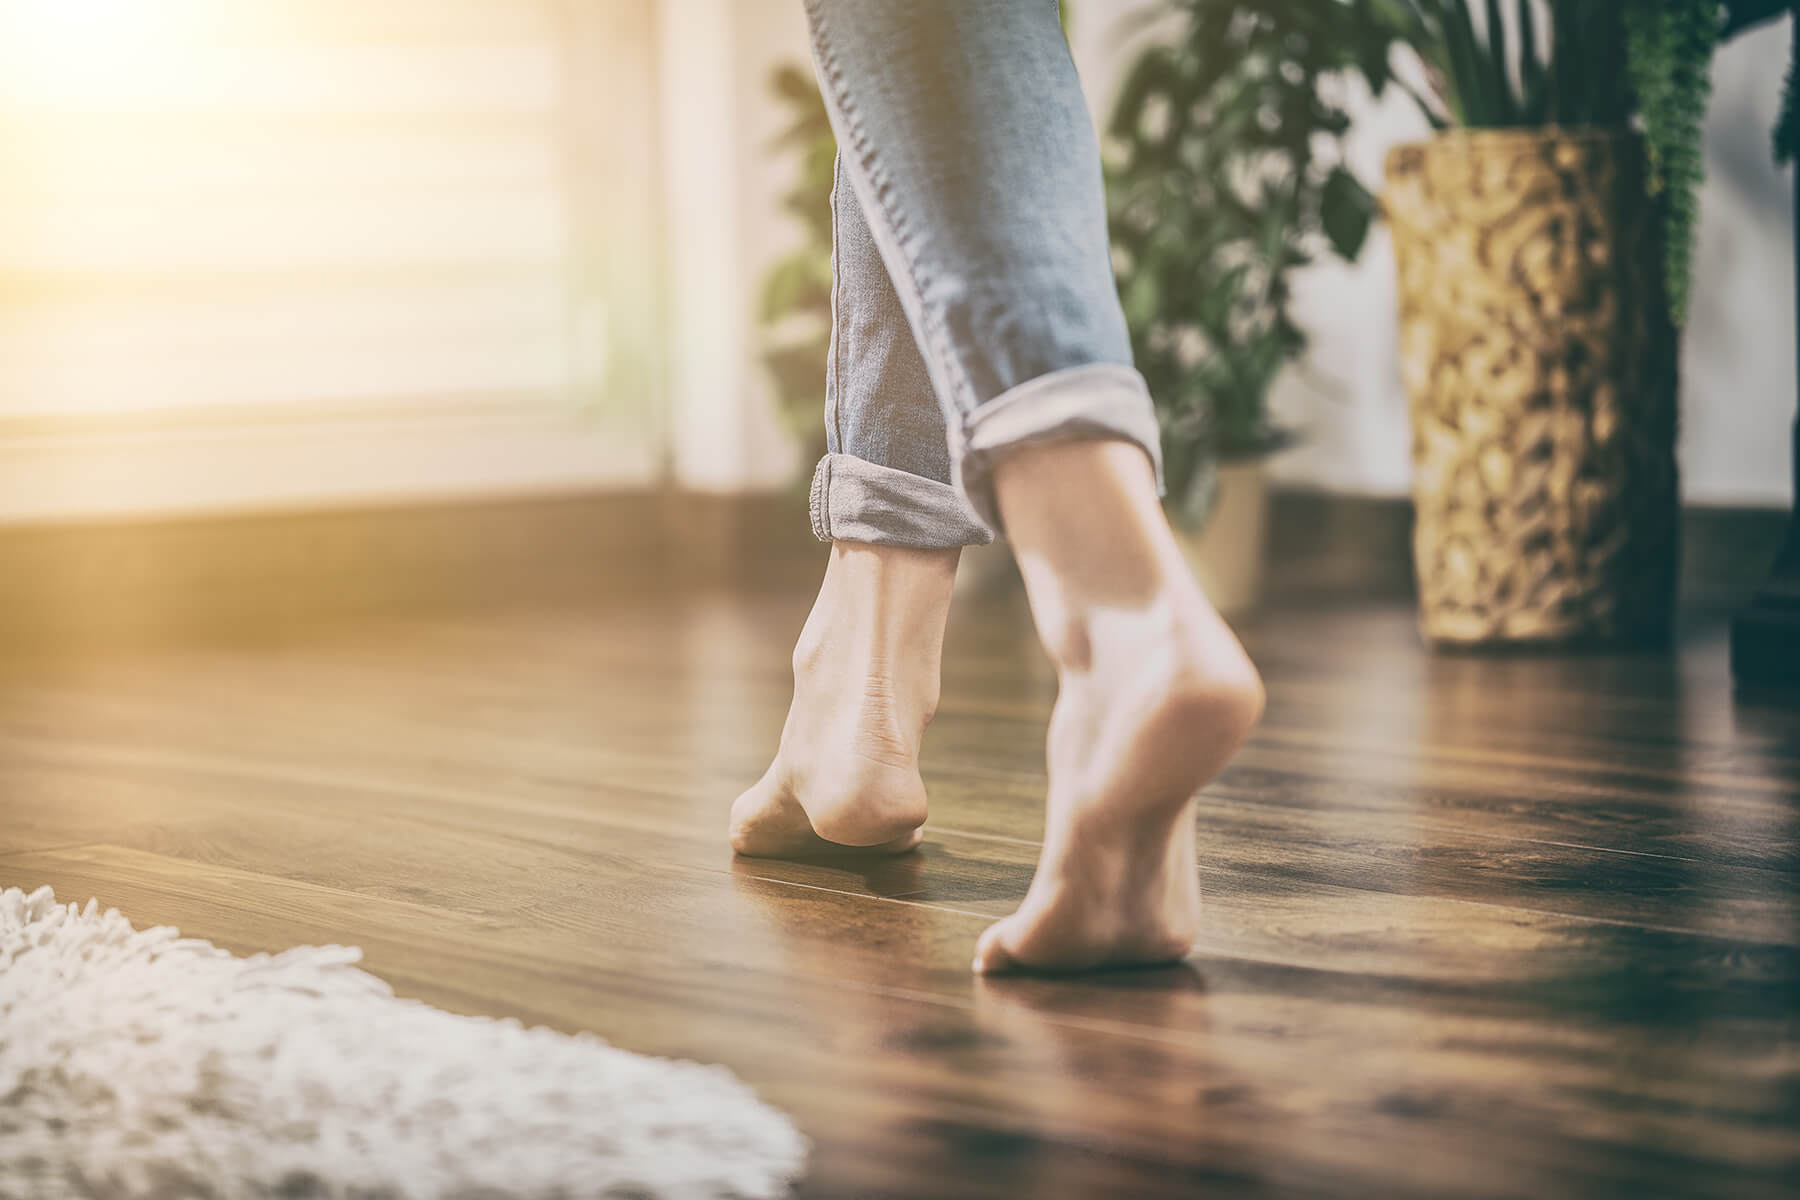 Woman walking across a hardwood floor